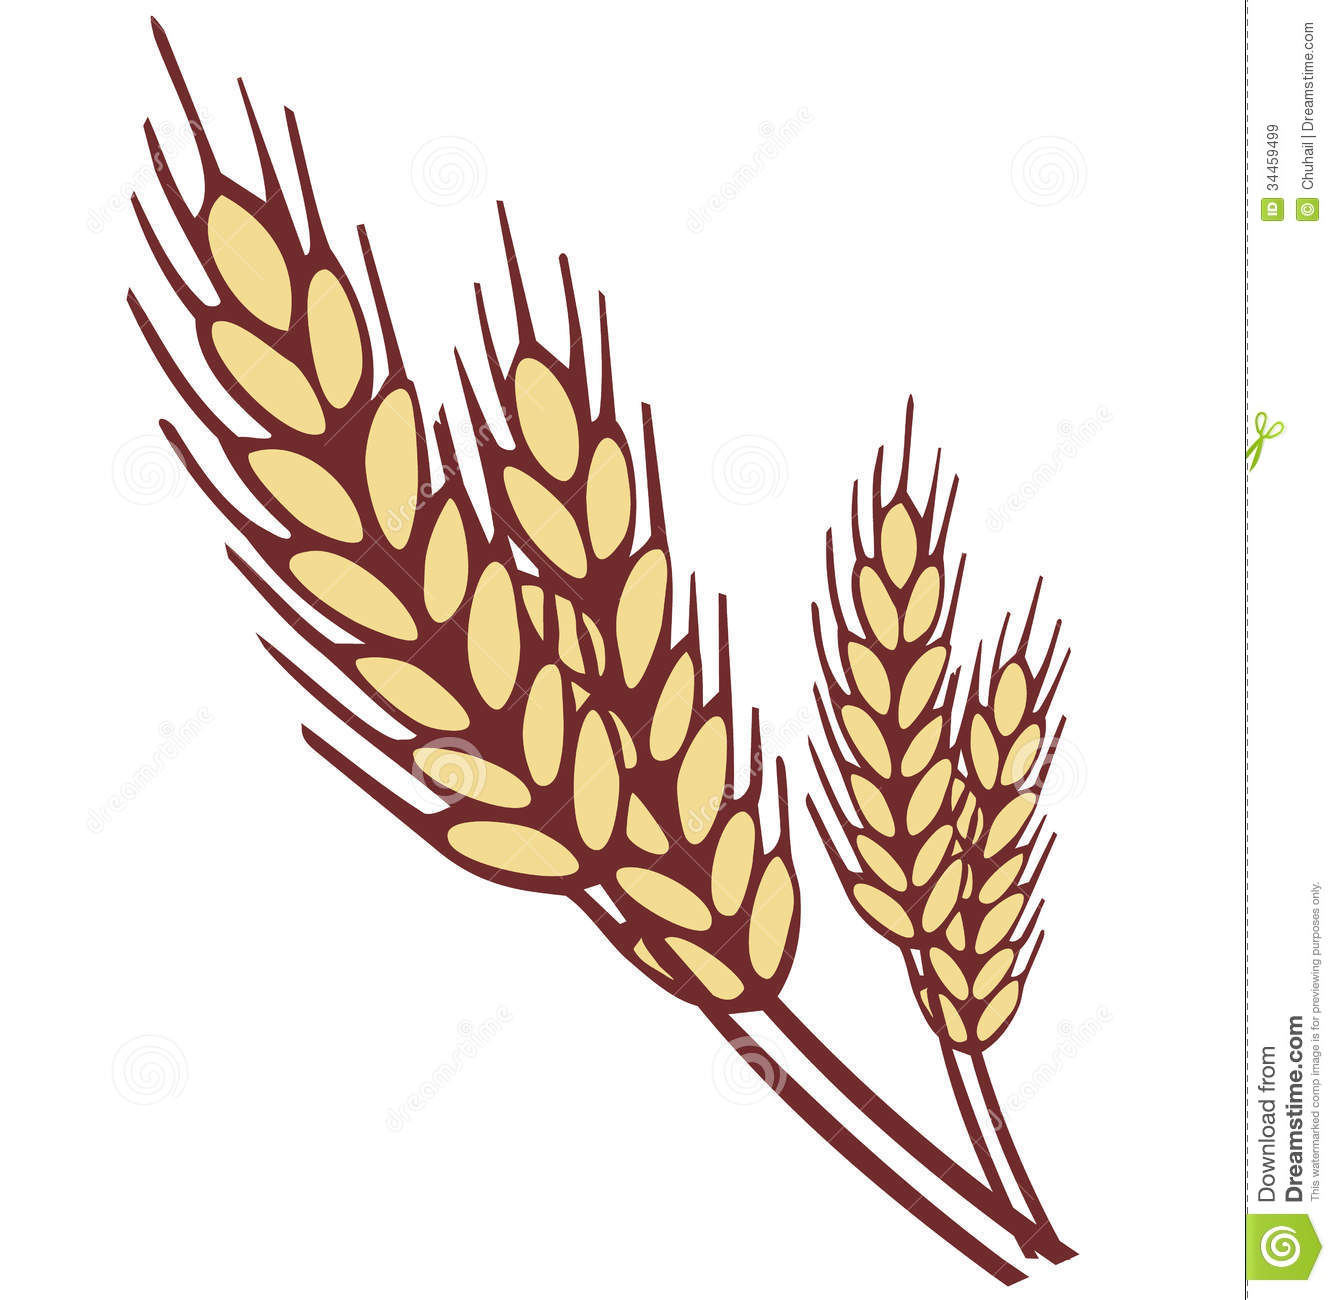 Wheat ear clipart - Clipground